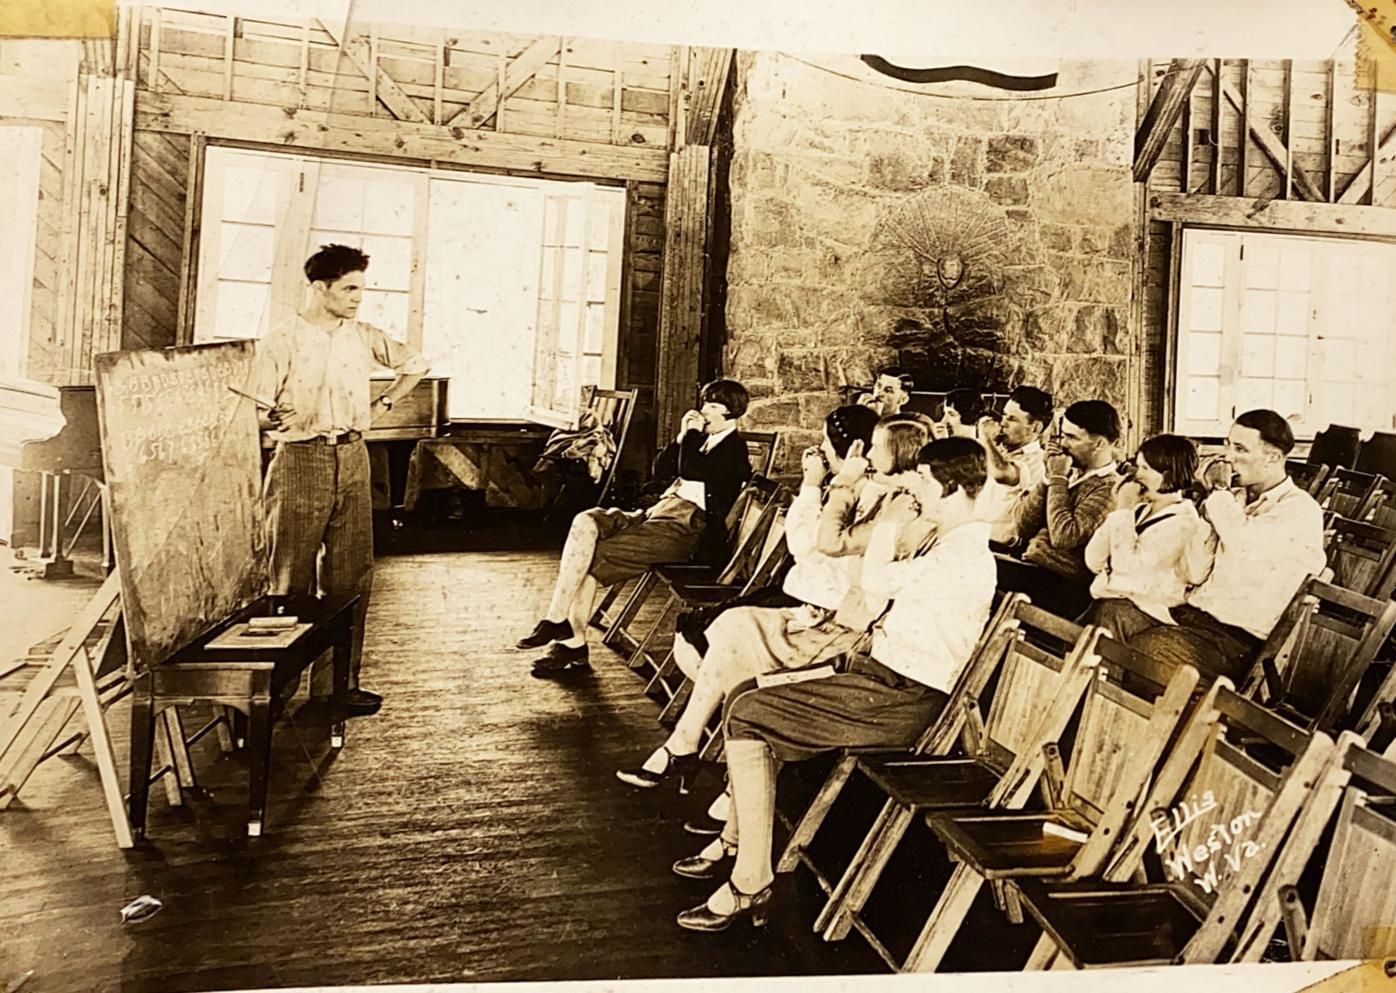 WVU Jackson's Mill celebrates 100 years as state 4-H Camp